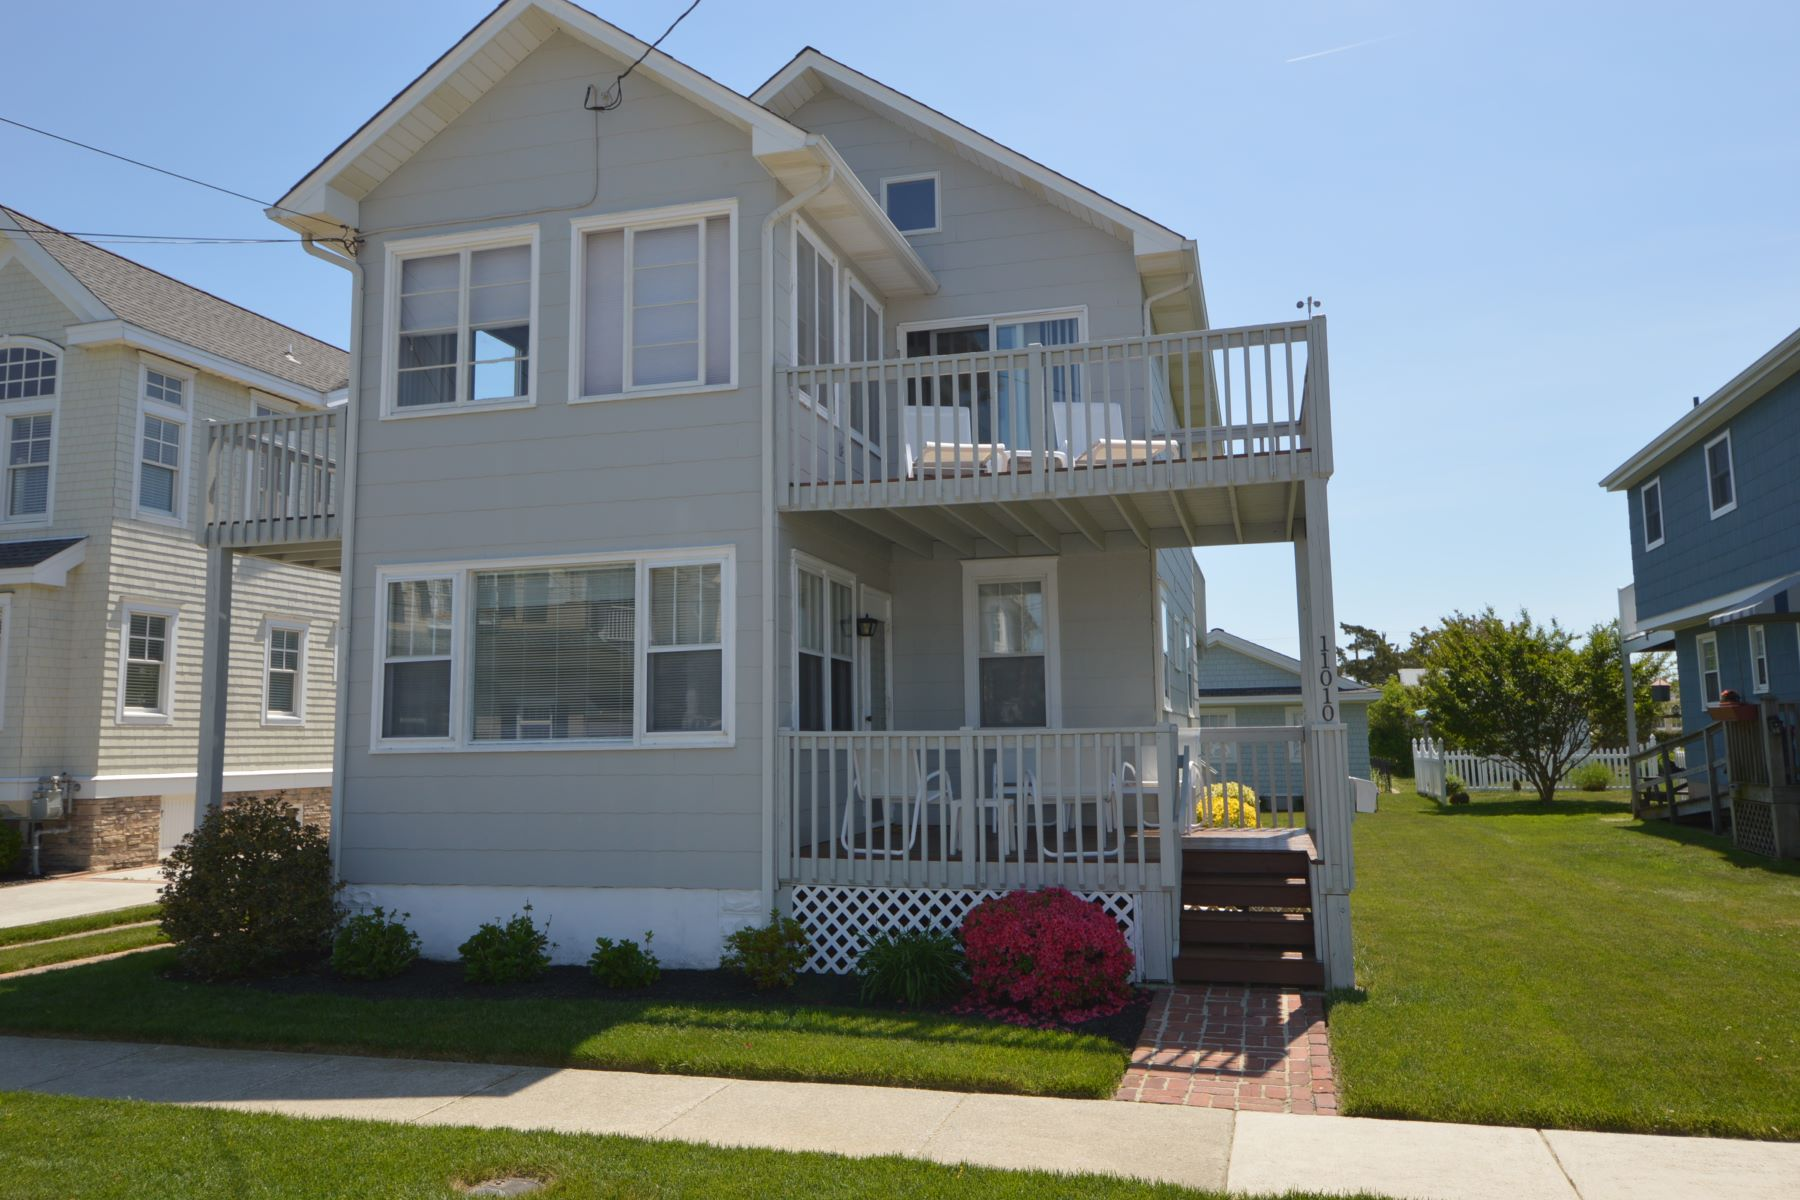 Duplex for Rent at Tranquil Island Duplex 11010 Sunset Drive First Floor, Stone Harbor, New Jersey 08247 United States